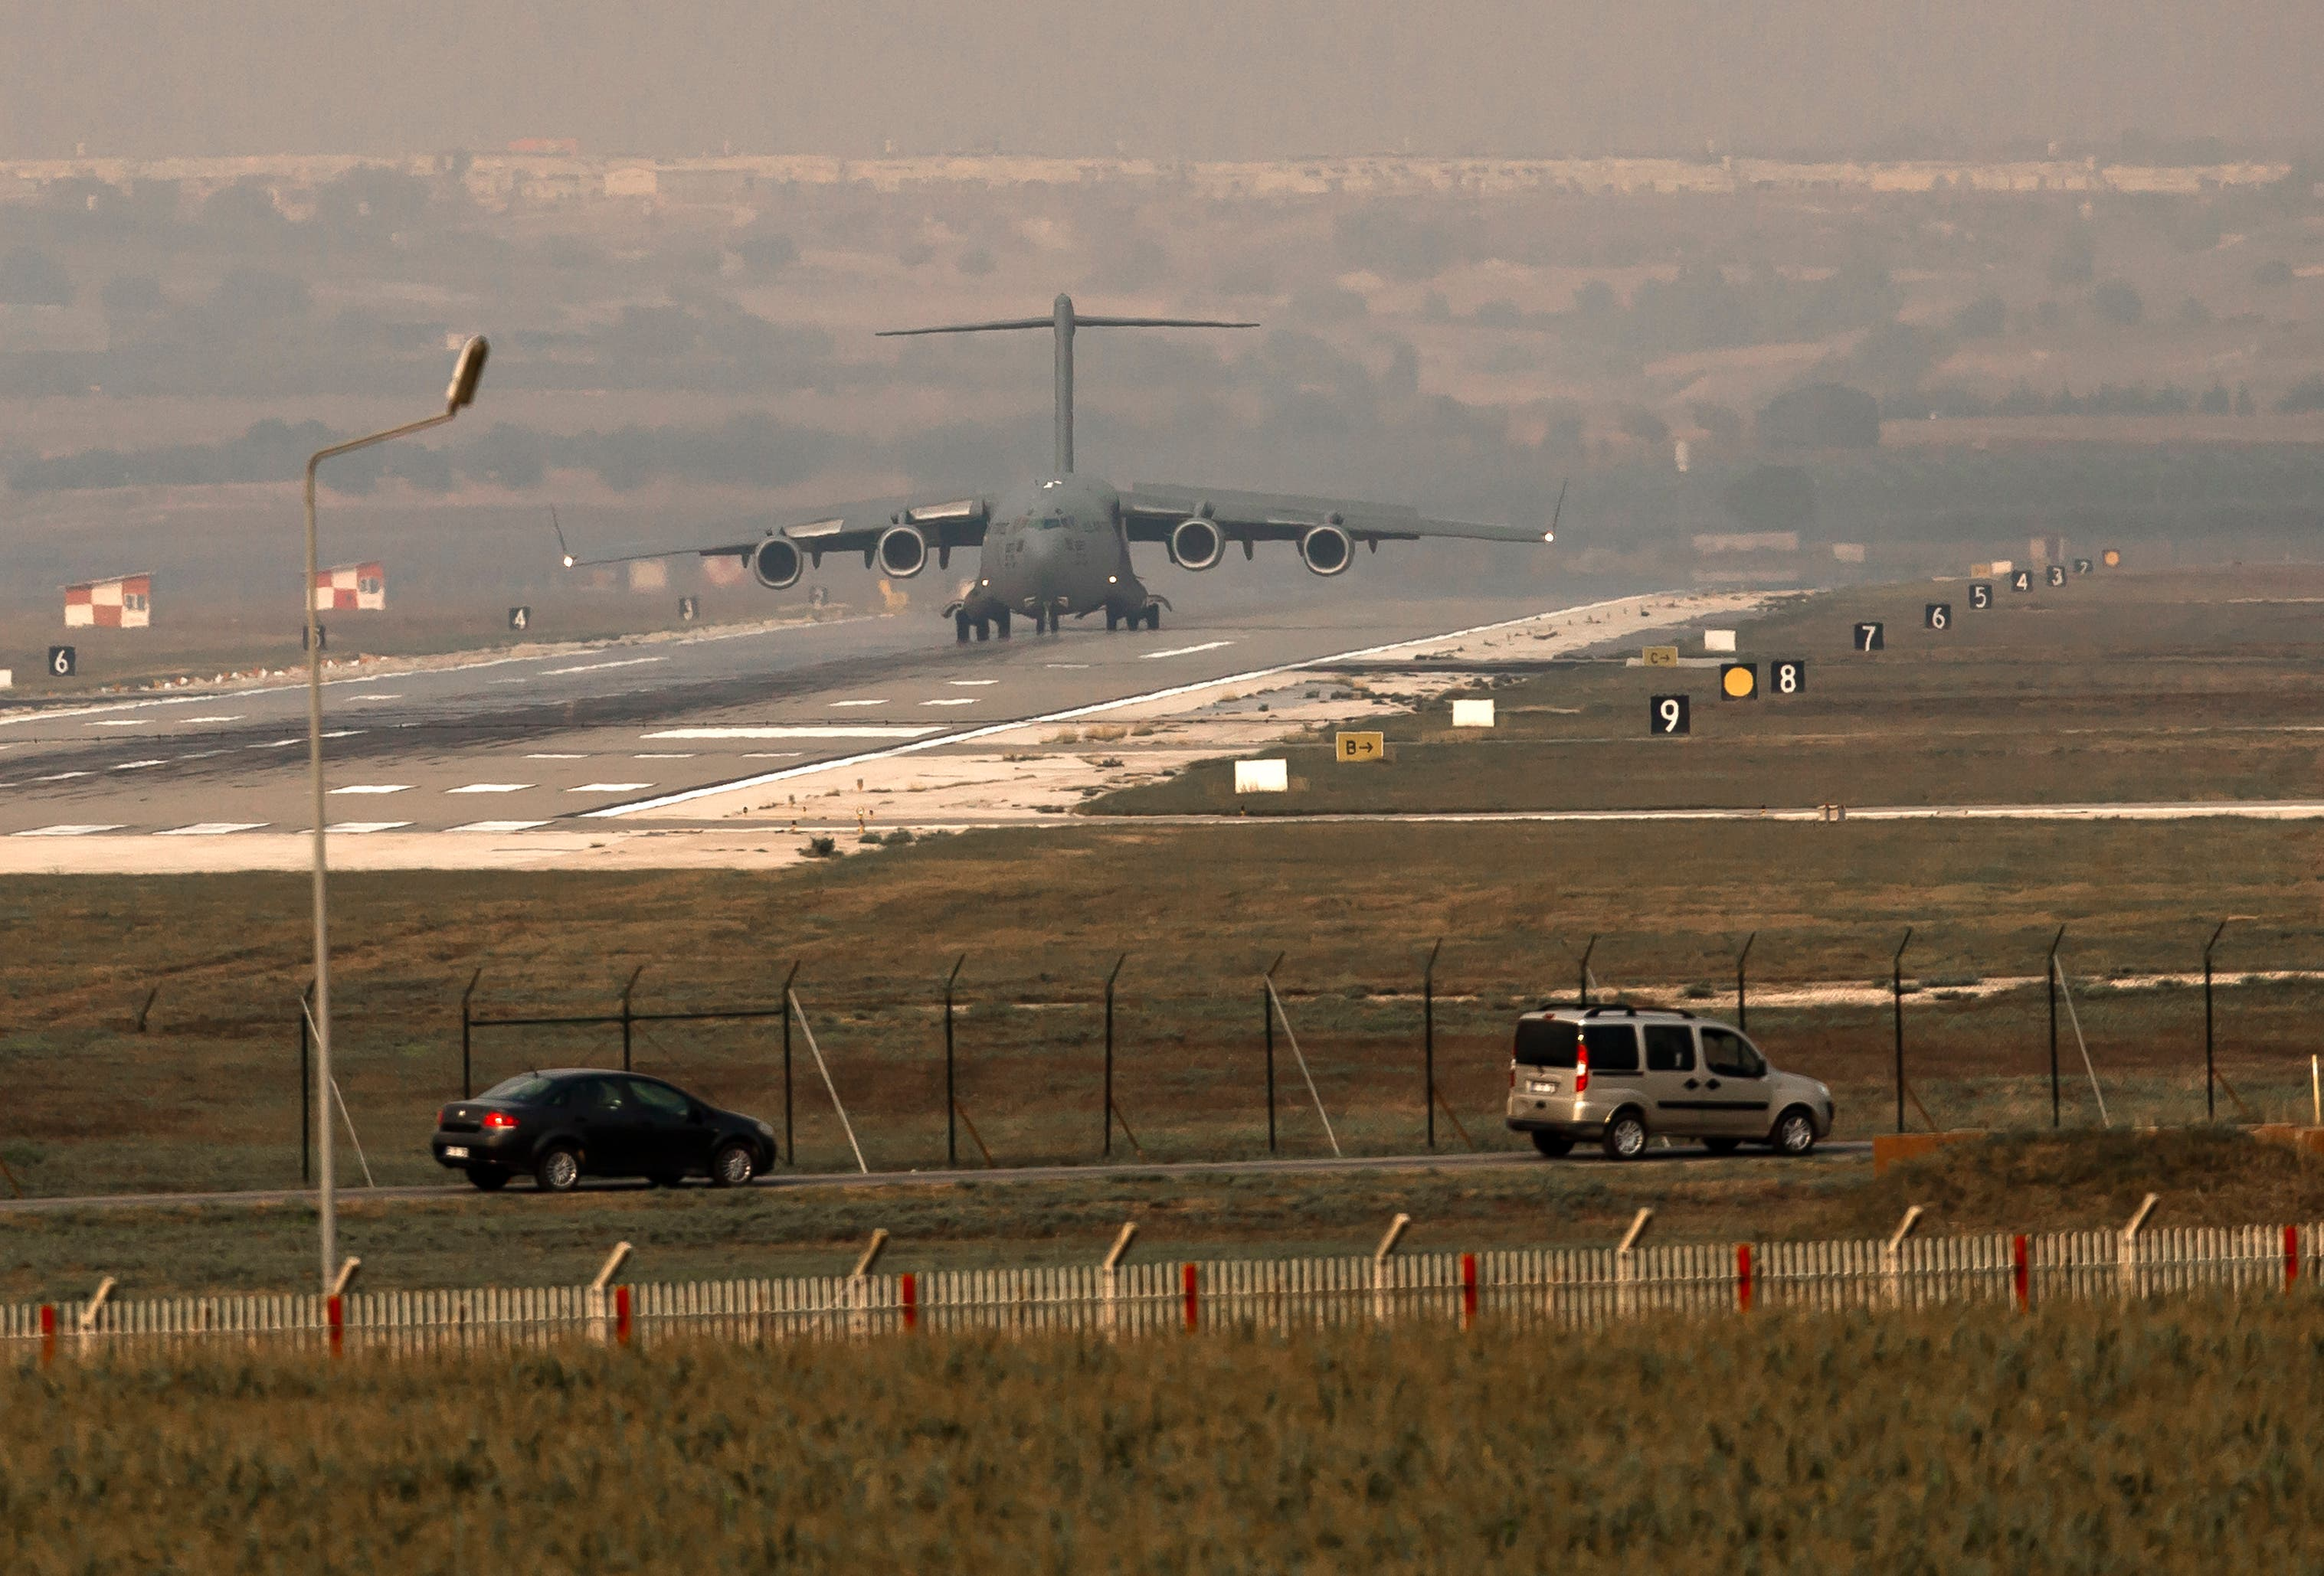 A US Airforce plane lands at the Incirlik airbase, southern Turkey, Saturday, Aug. 31, 2013. AP